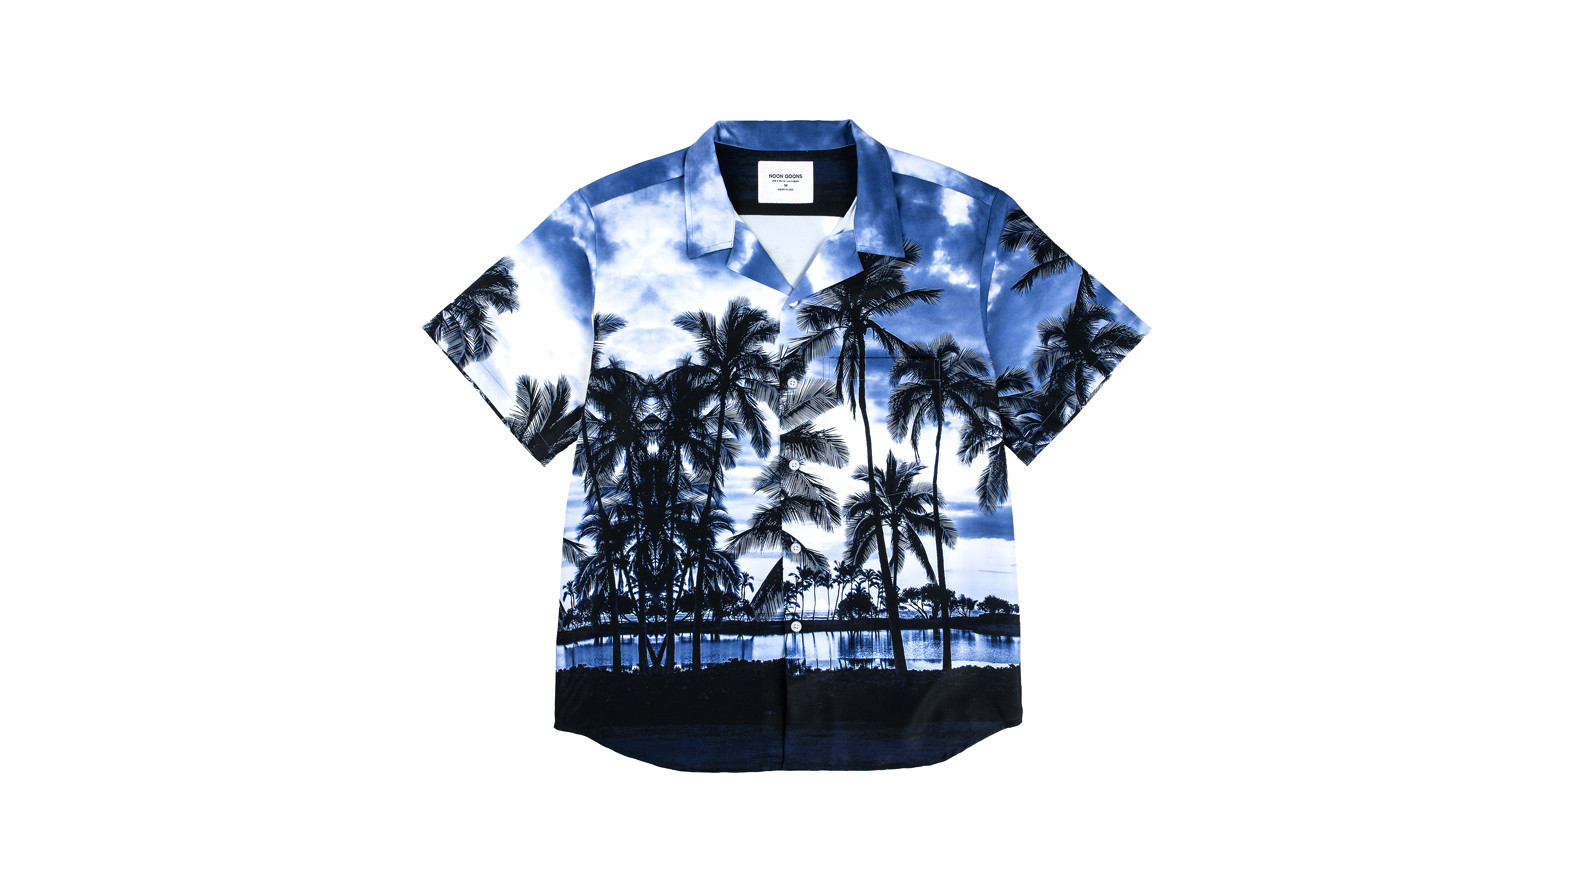 Noon Goons men's palm-print Royal Hawaiian button-front shirt, $289 at Dover Street Market Los Angel